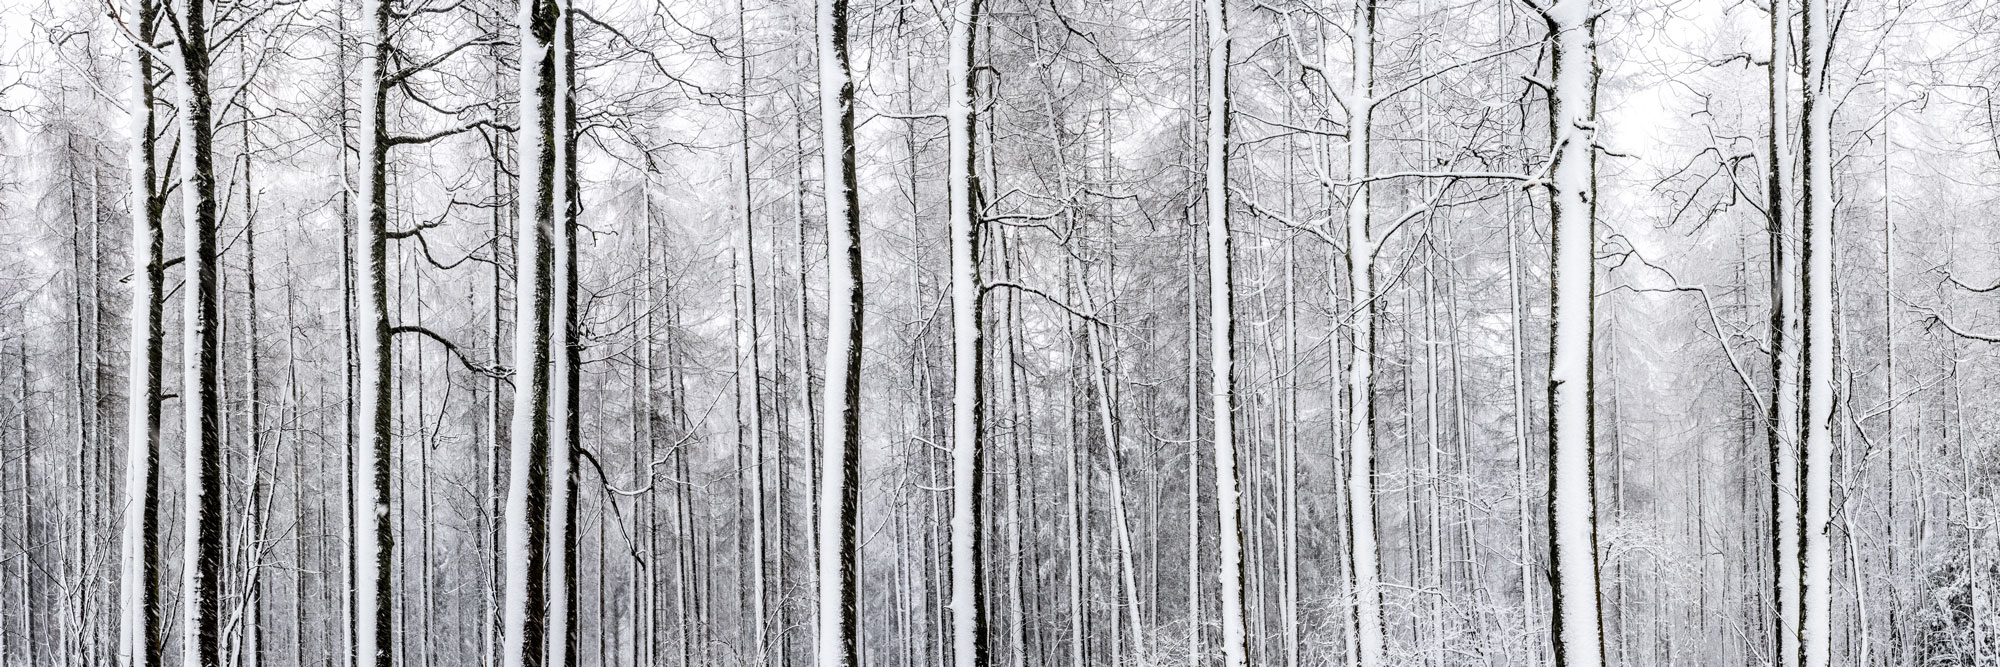 woodland trees in winter